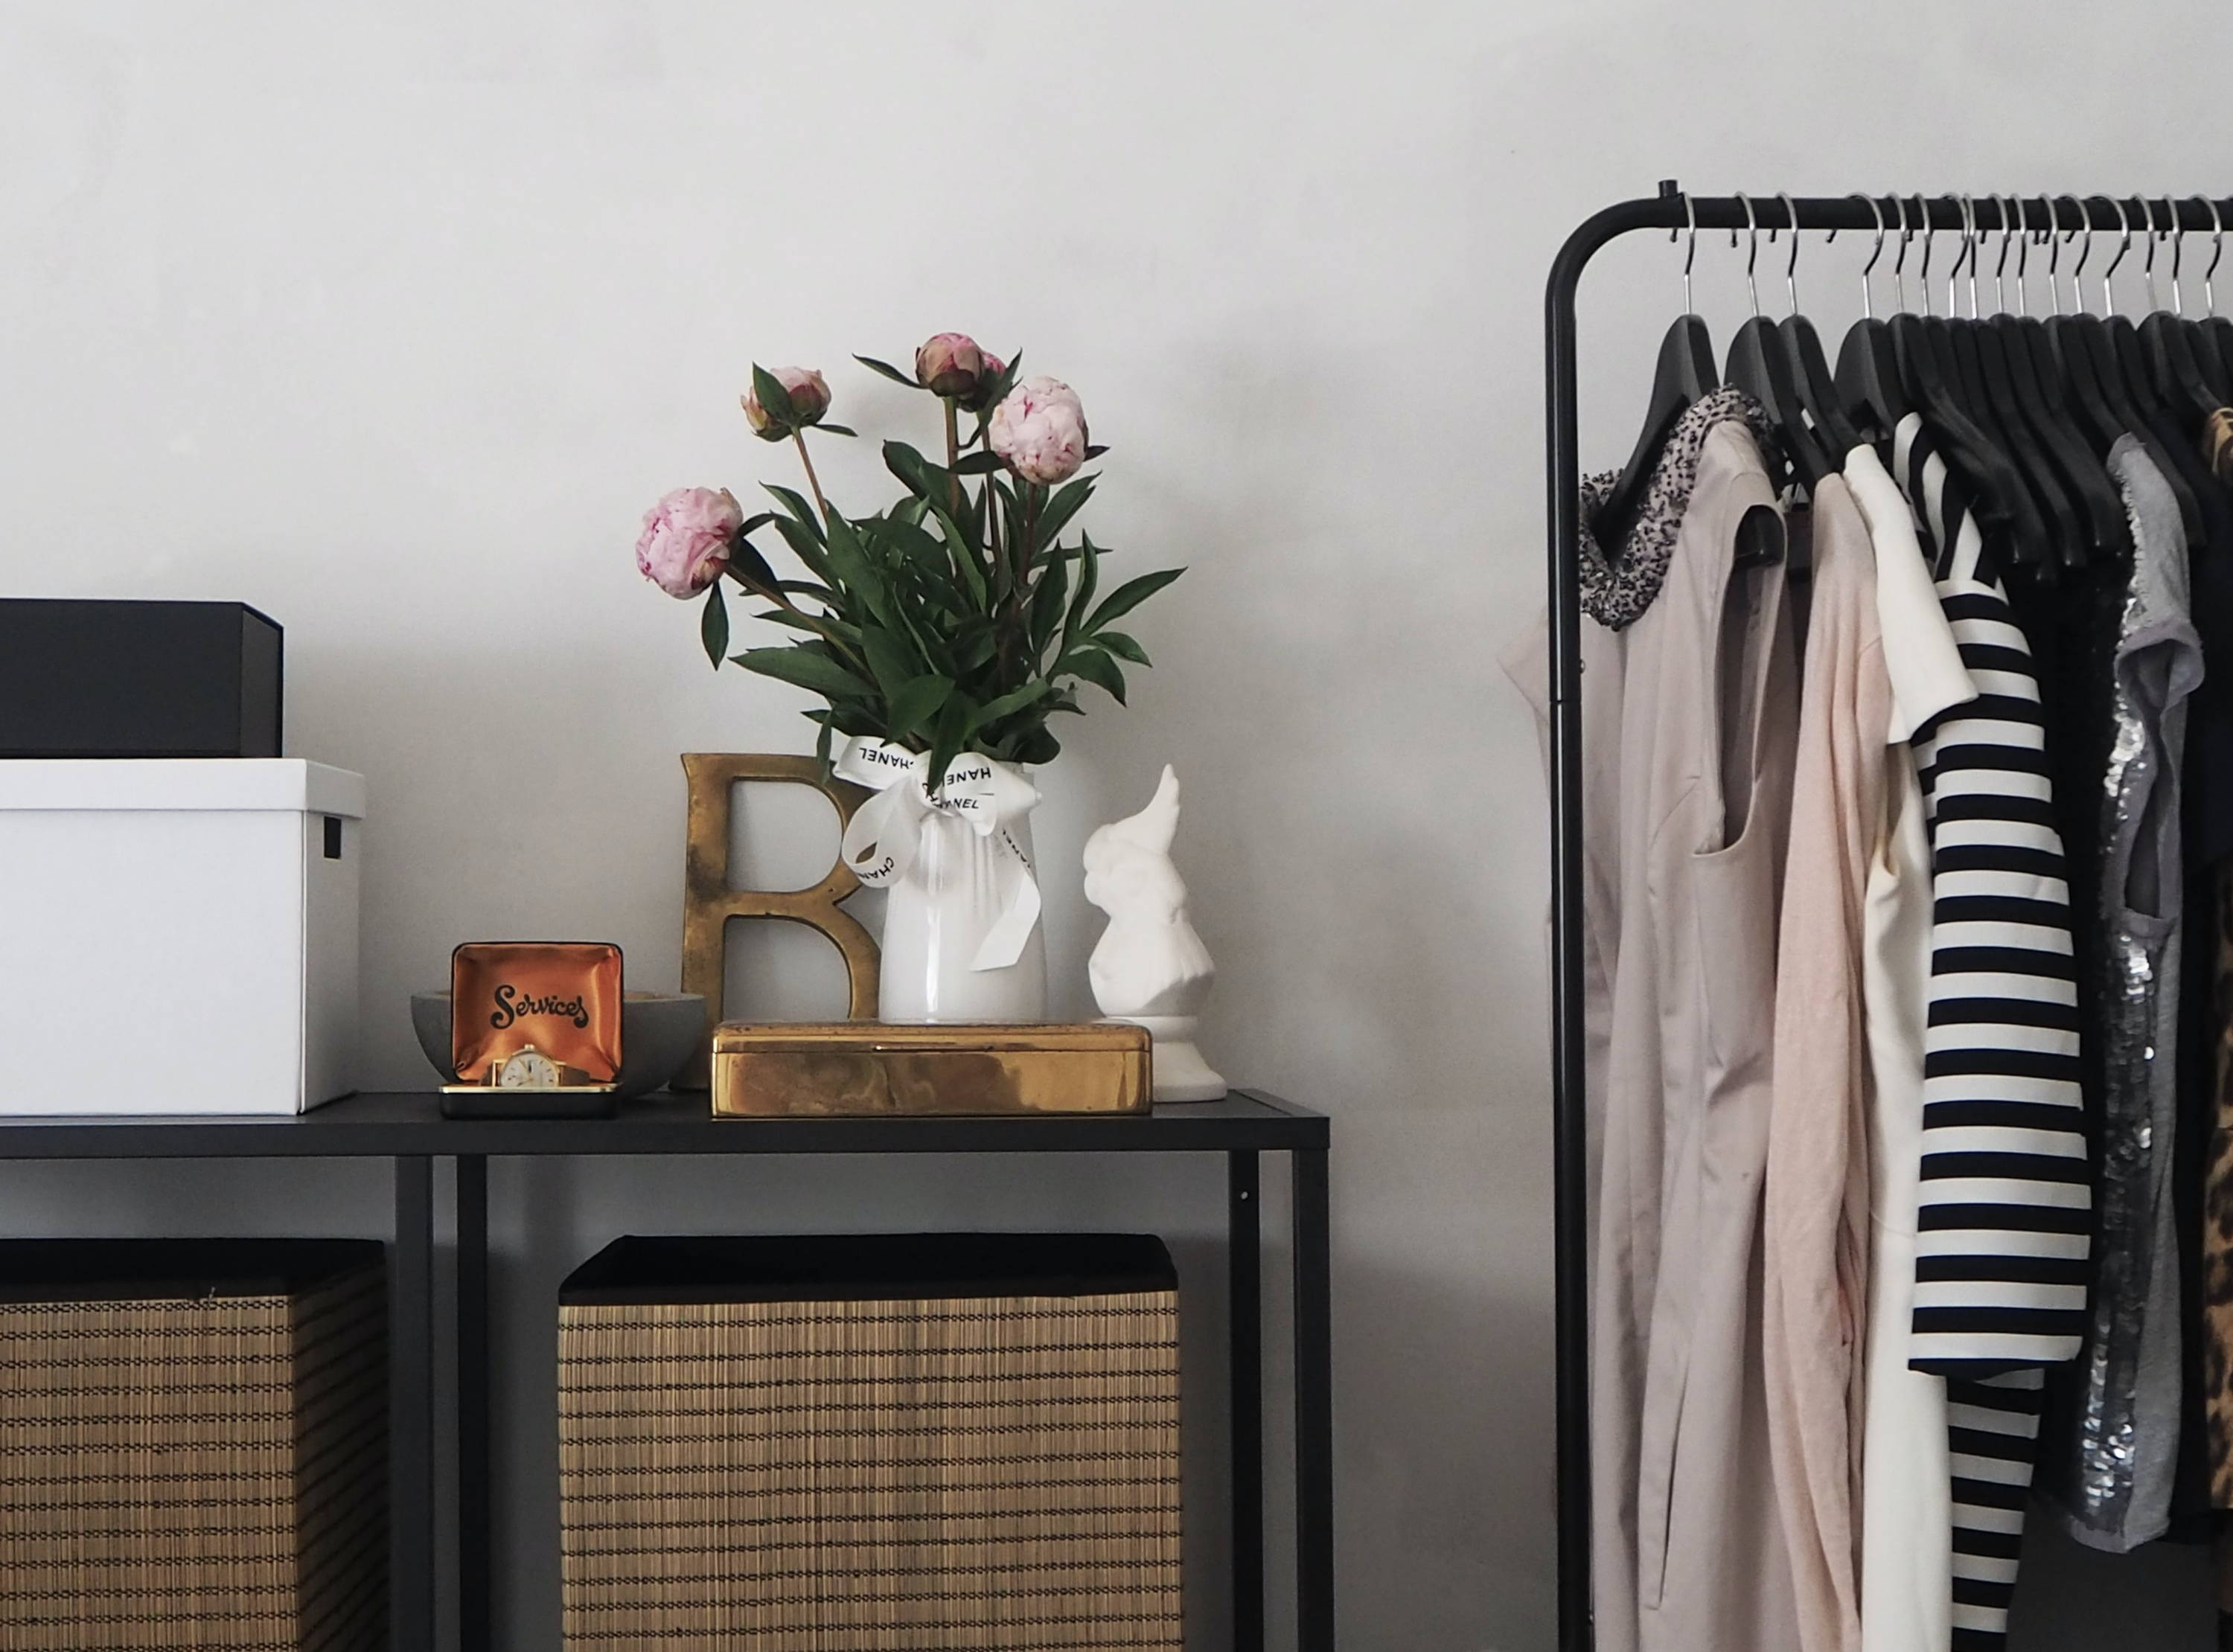 Stylish clothes rack and cupboard with flowers and other decorations